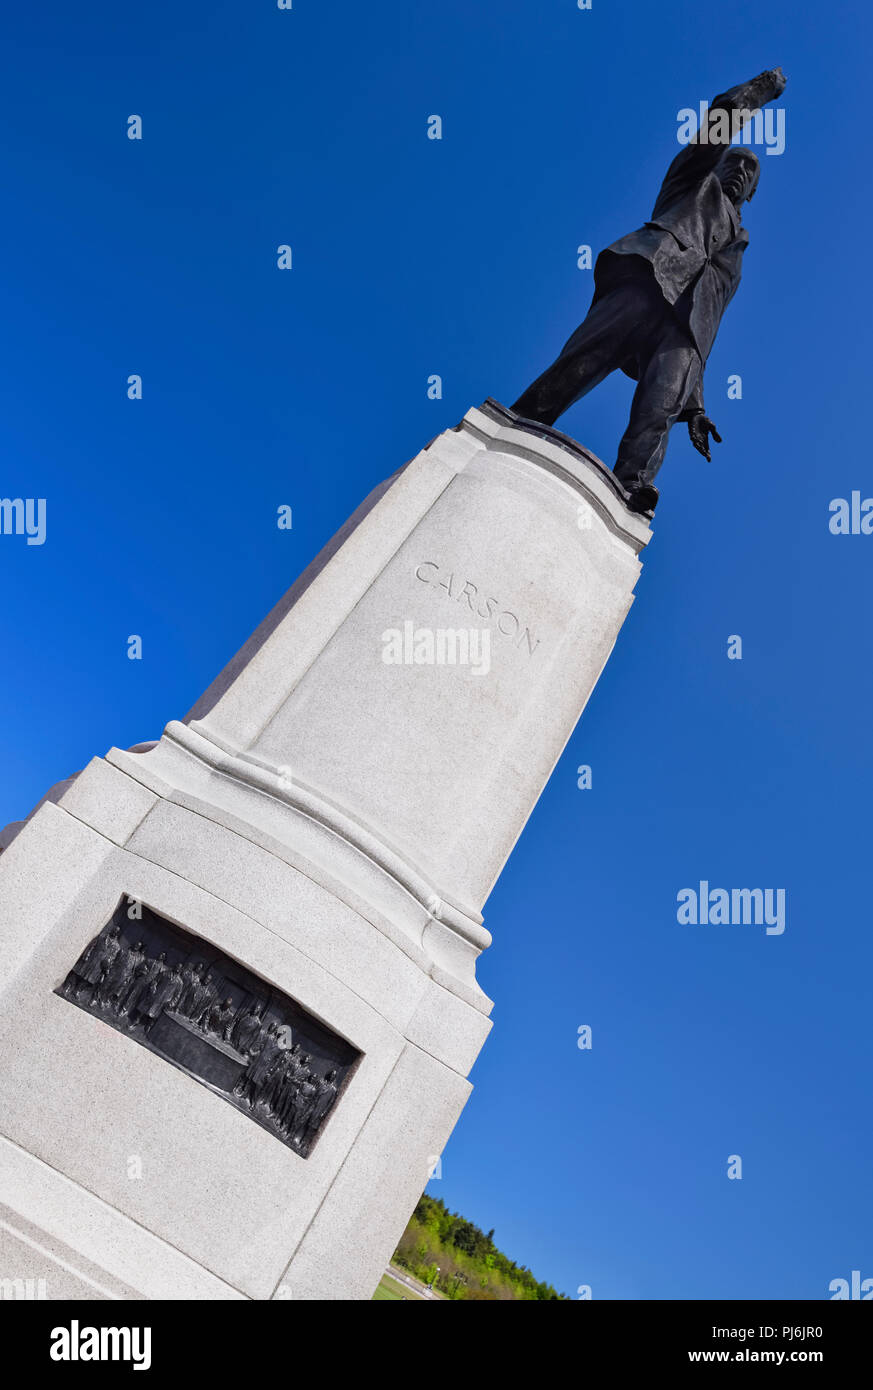 Northern Ireland, Belfast, Stormont, Statue of Lord Edward Carson. - Stock Image